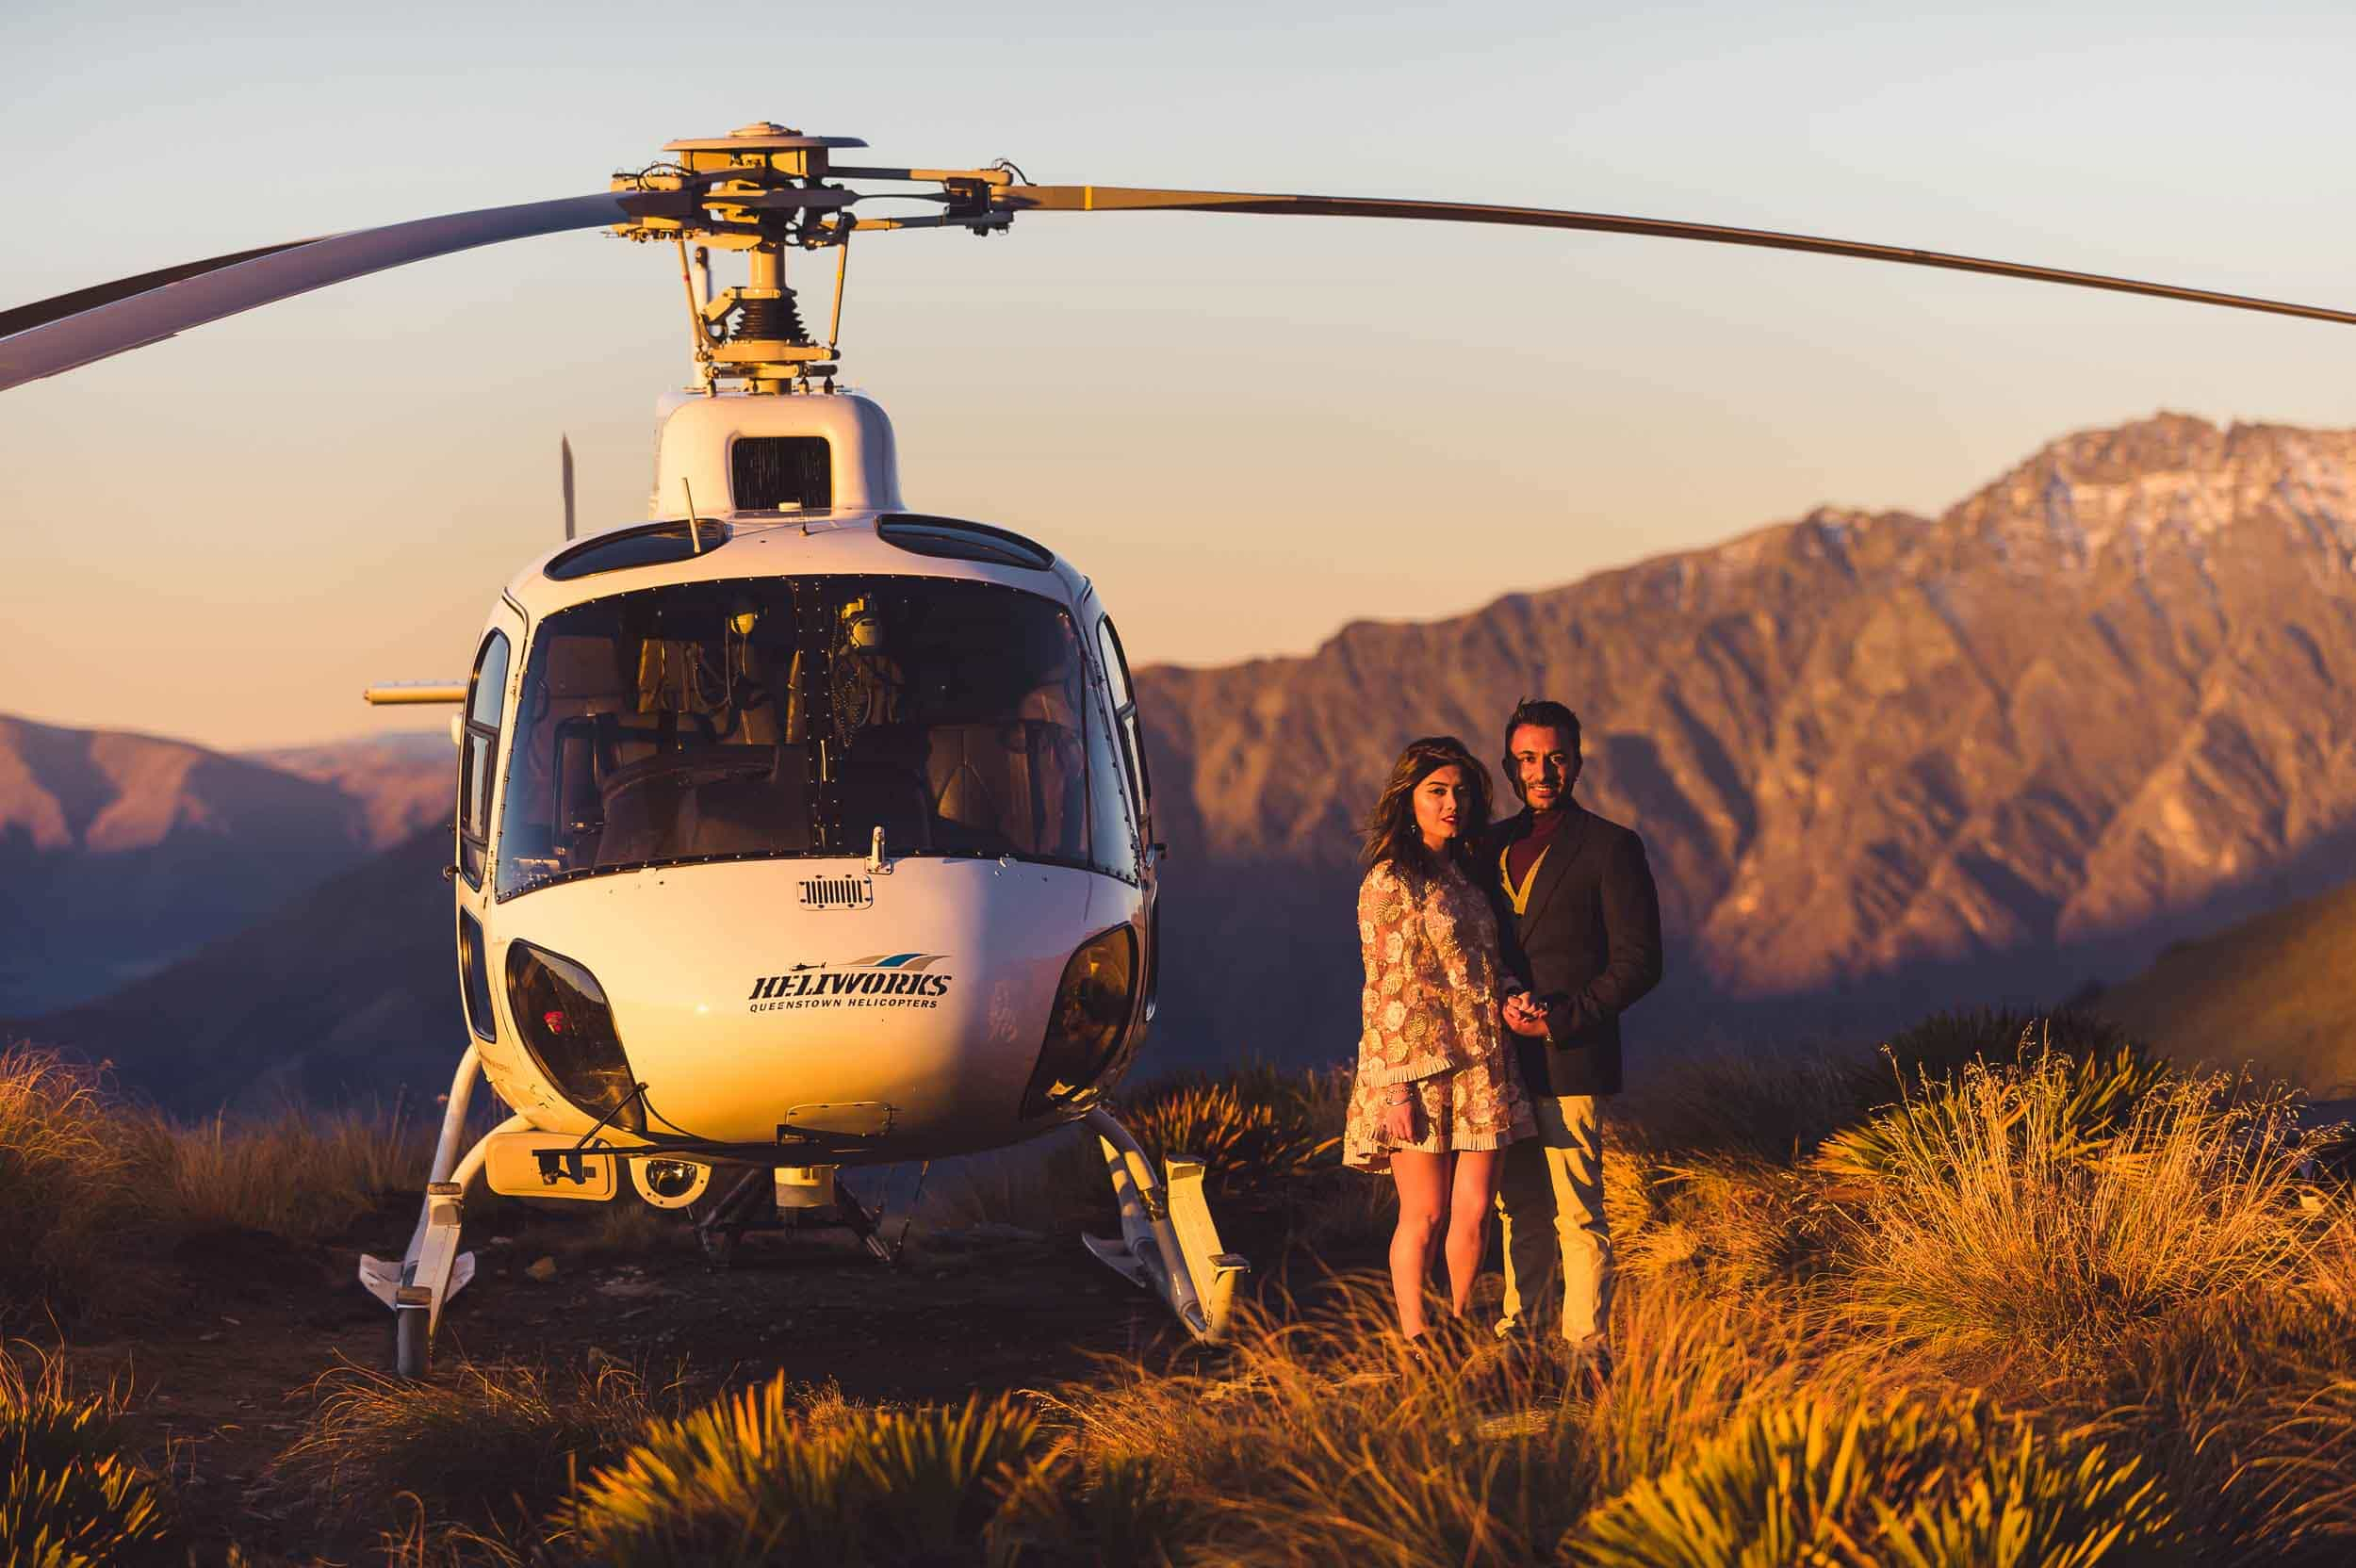 Queenstown Engagement Photography Queenstown heli wedding photos Roshan + Sujata | Surprise Mountain Top Proposal fallon photography